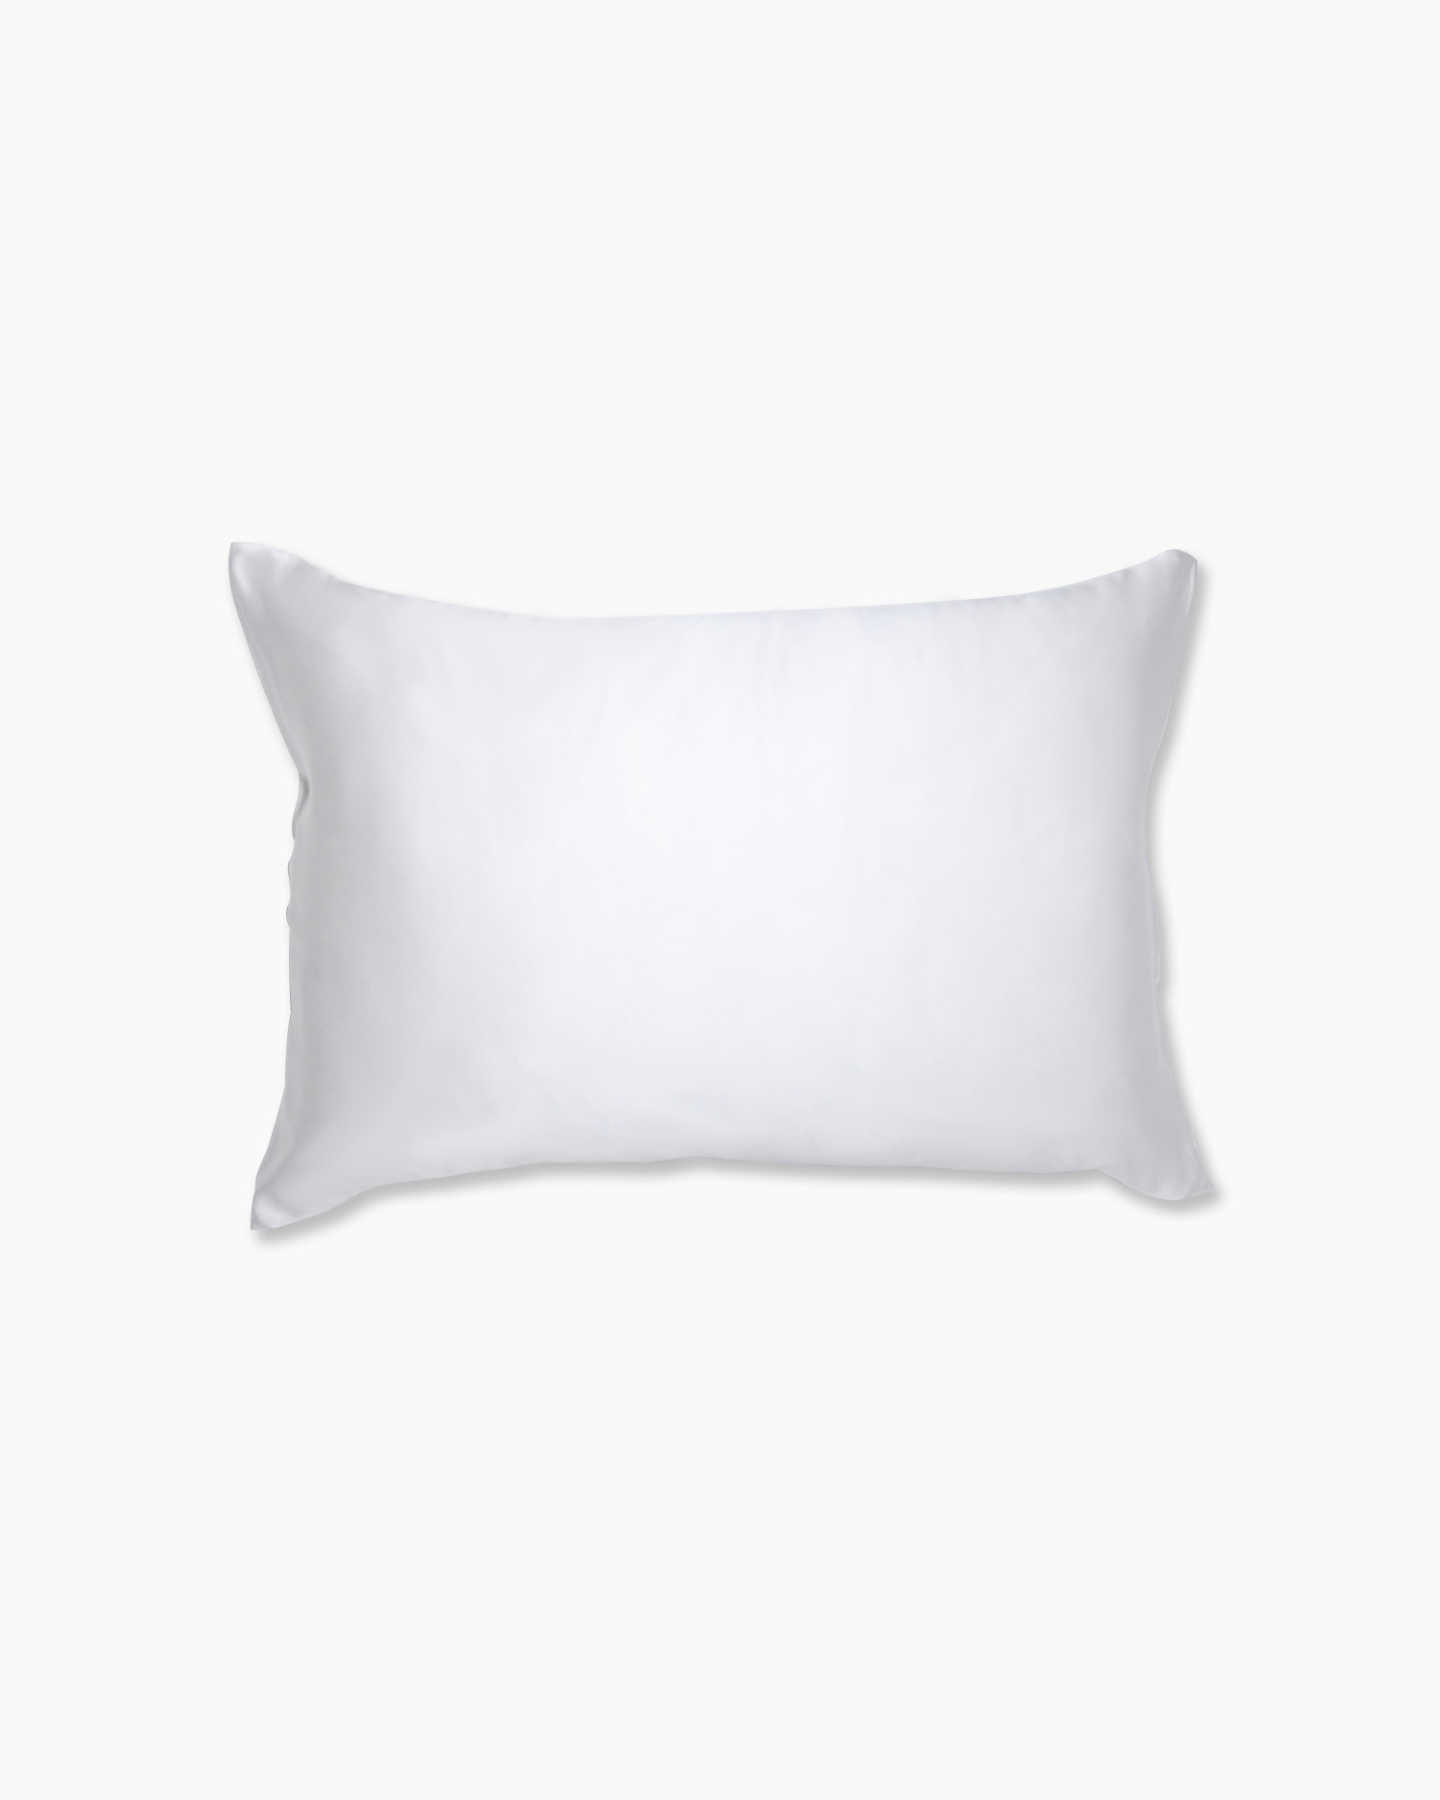 Mulberry silk pillowcase in ivory